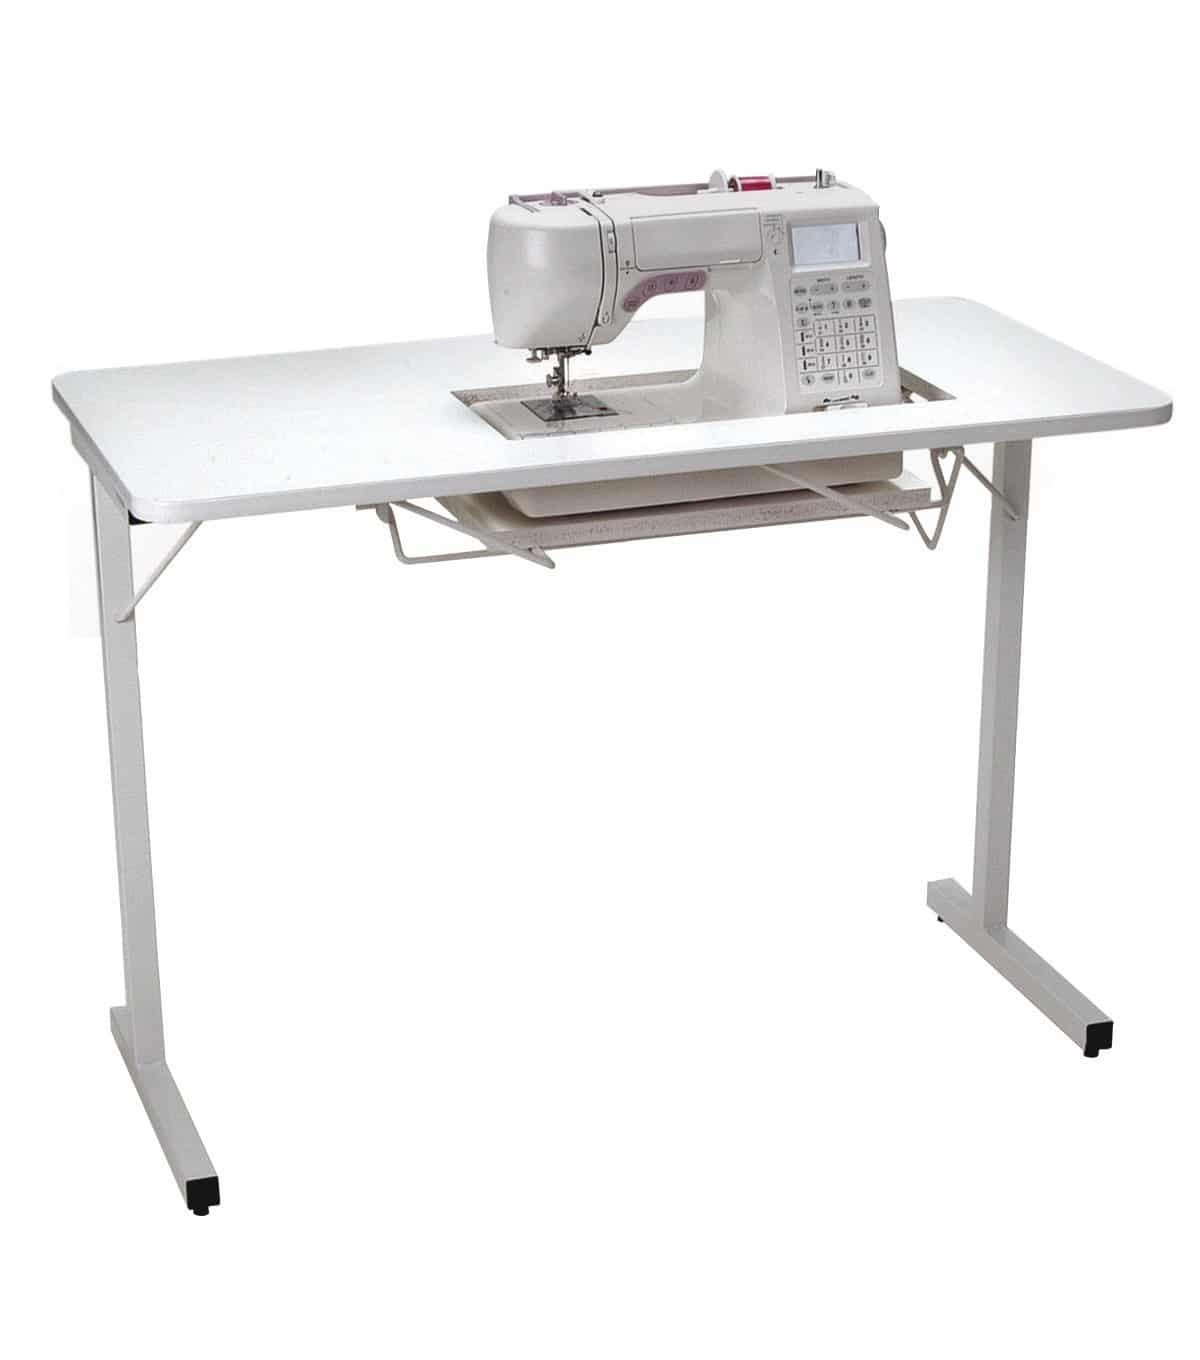 Genial Arrow Sewing Cabinets 601 Gidget Sewing Table